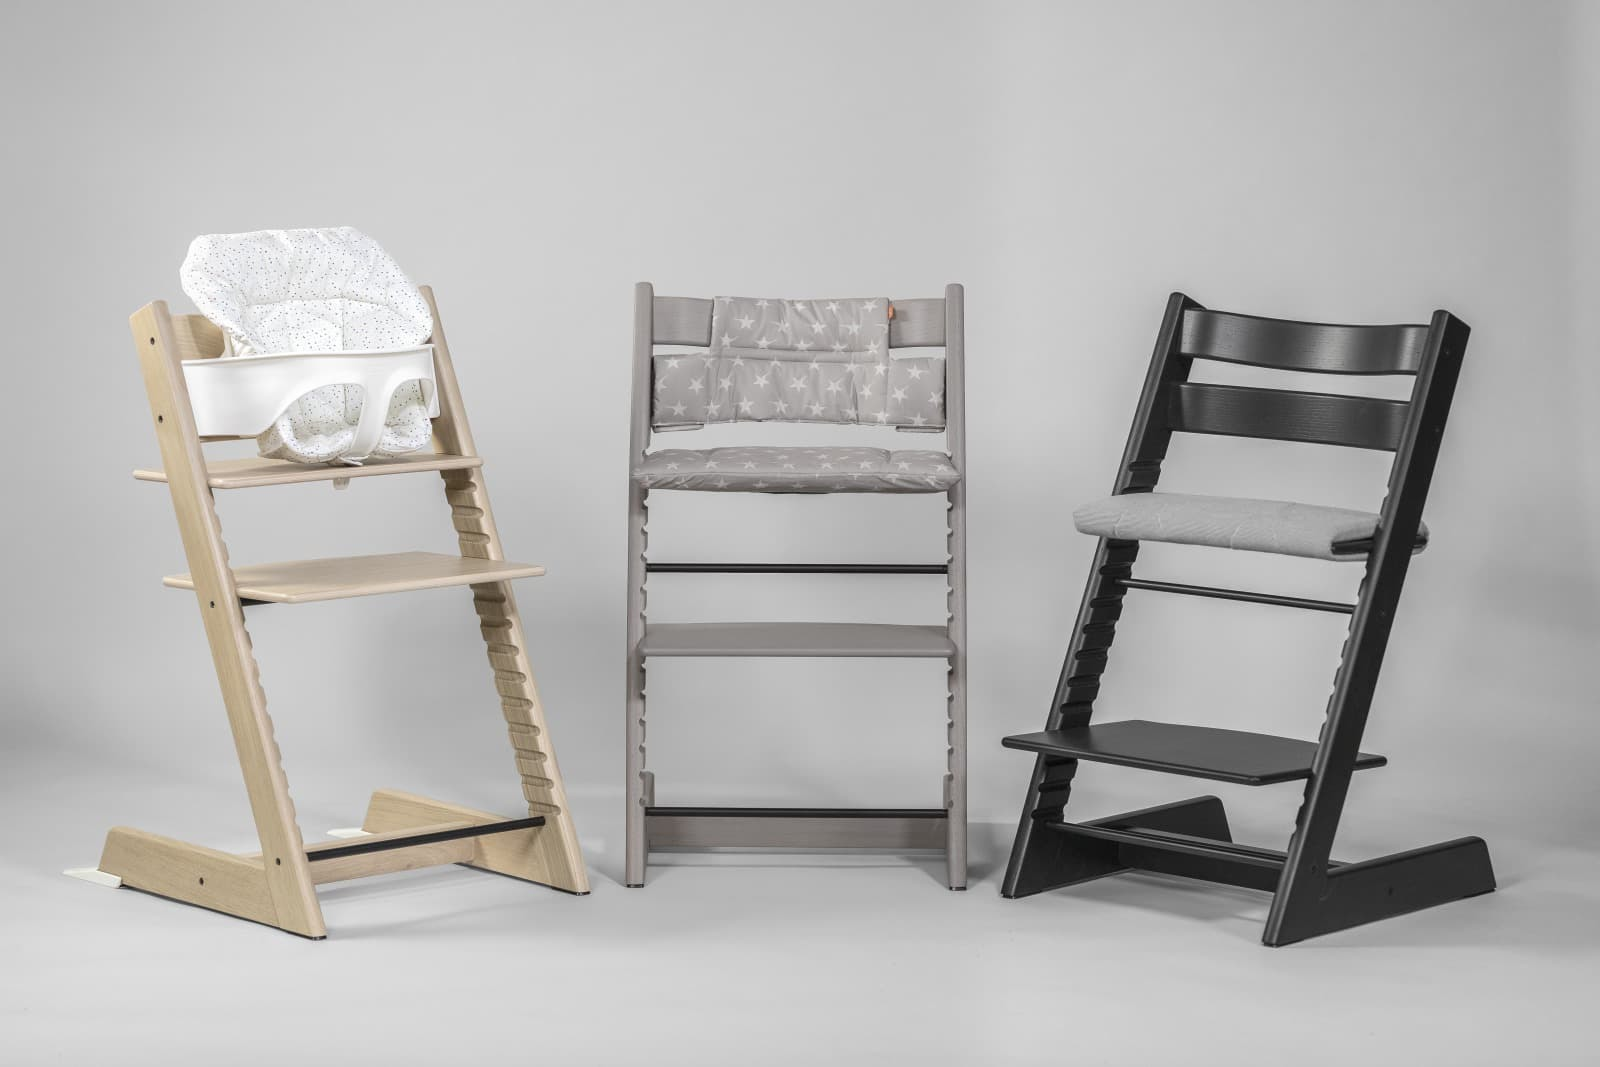 Tripp Trapp® chair, Oak Black, Greywash and White, with White Baby Set and Soft Sprinkle Cushion.